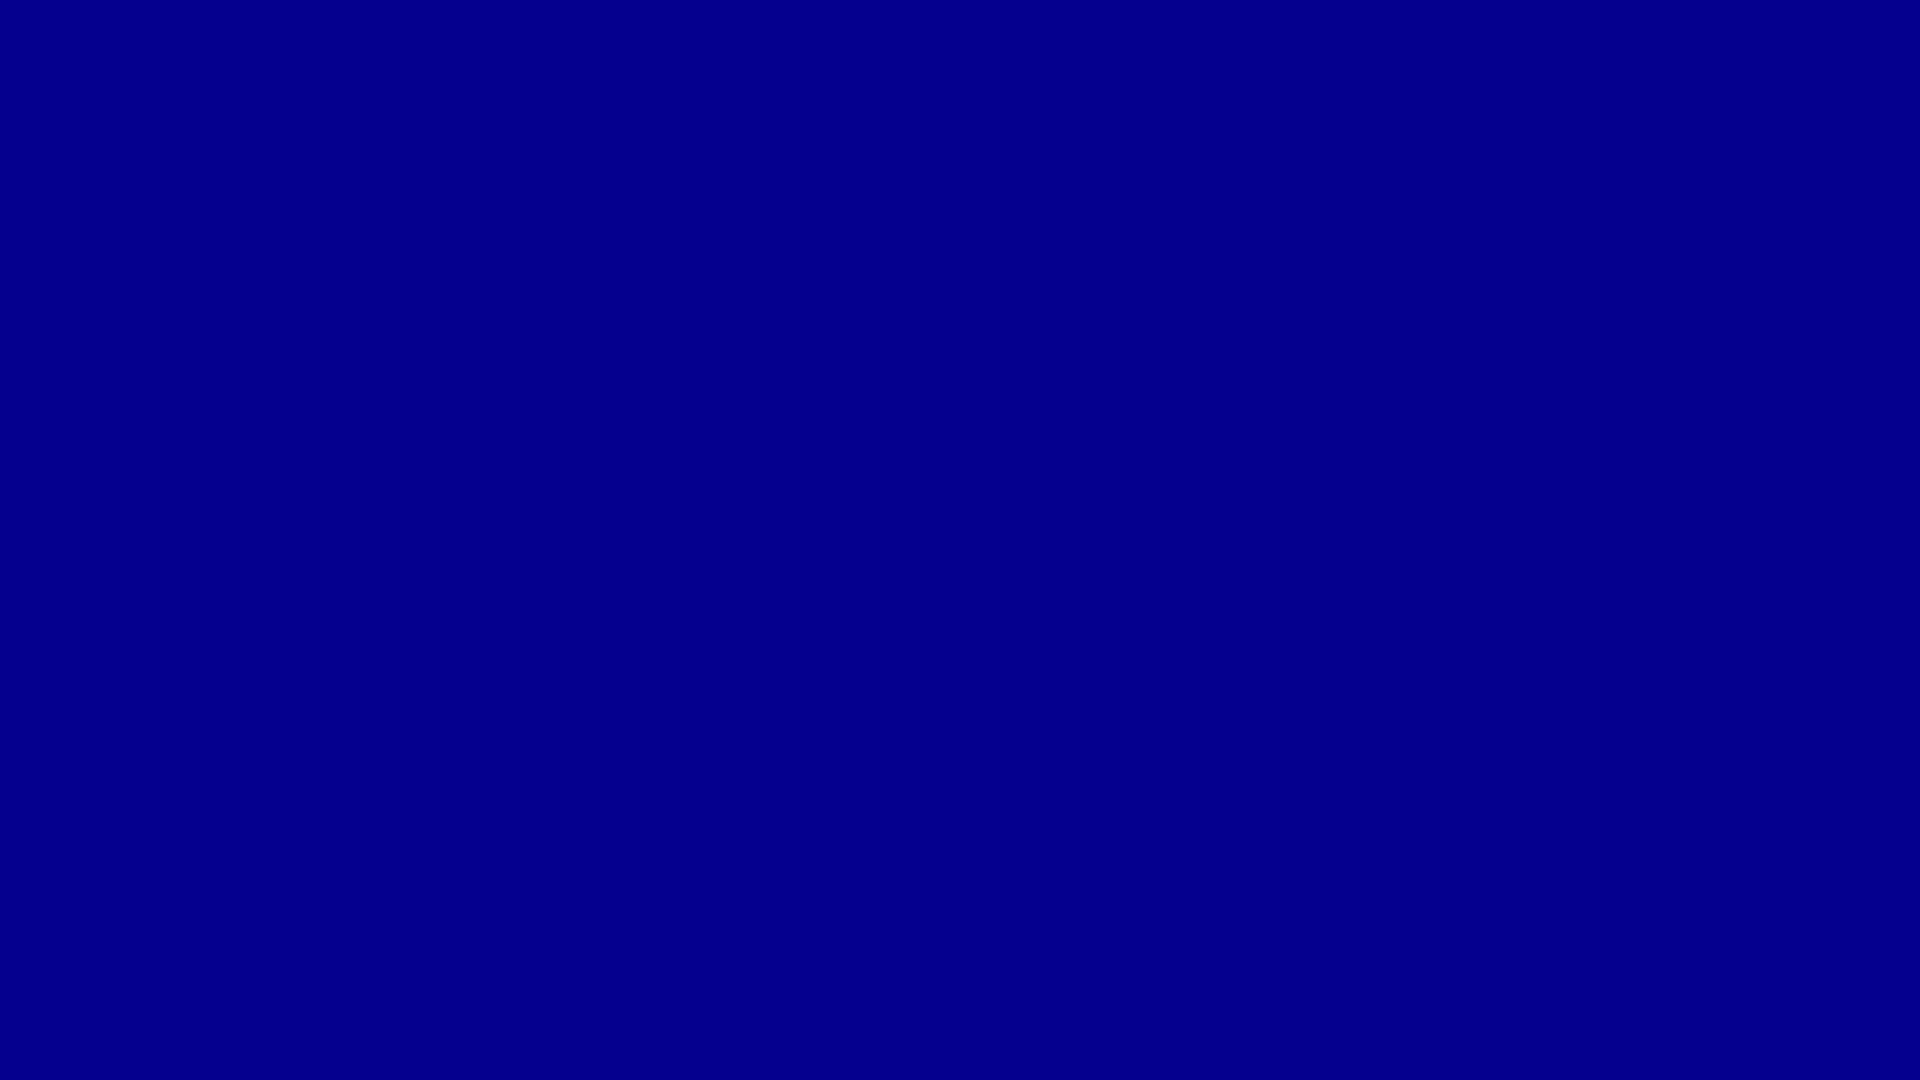 Download Dark Blue Color Wallpapers Gallery